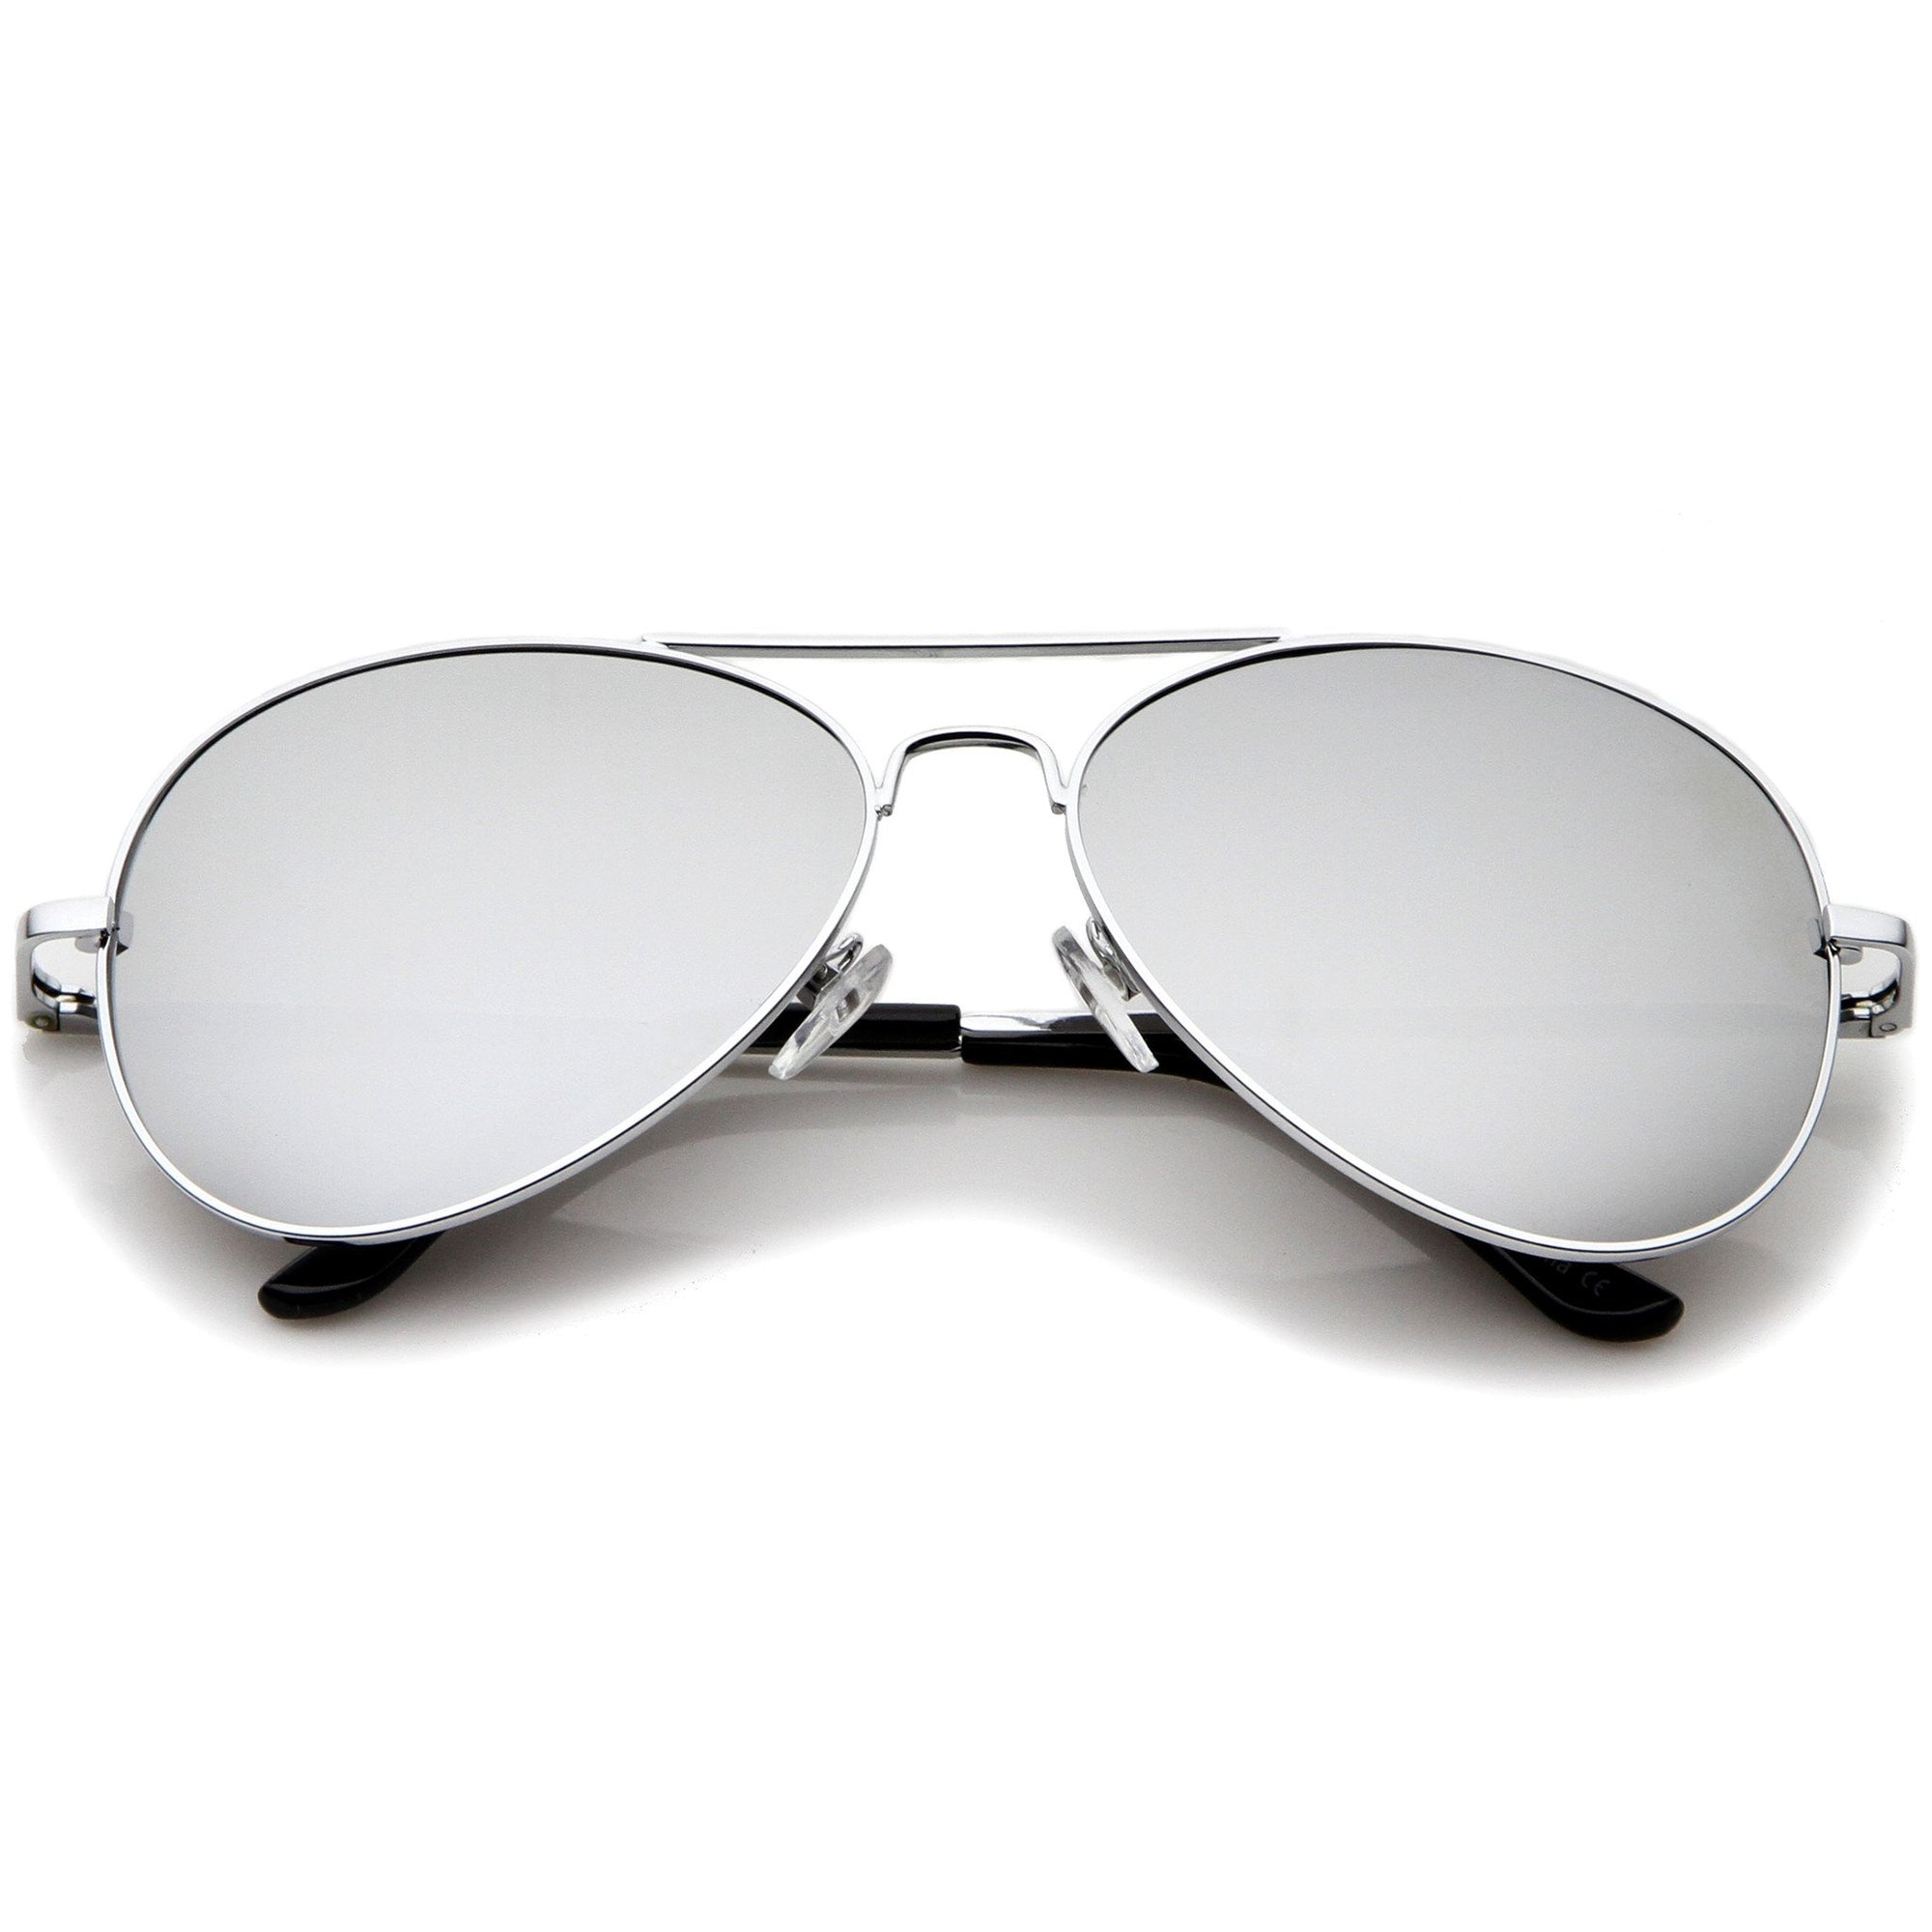 Premium Military Mirrored Lens Metal Aviator Sunglasses 1375 58mm